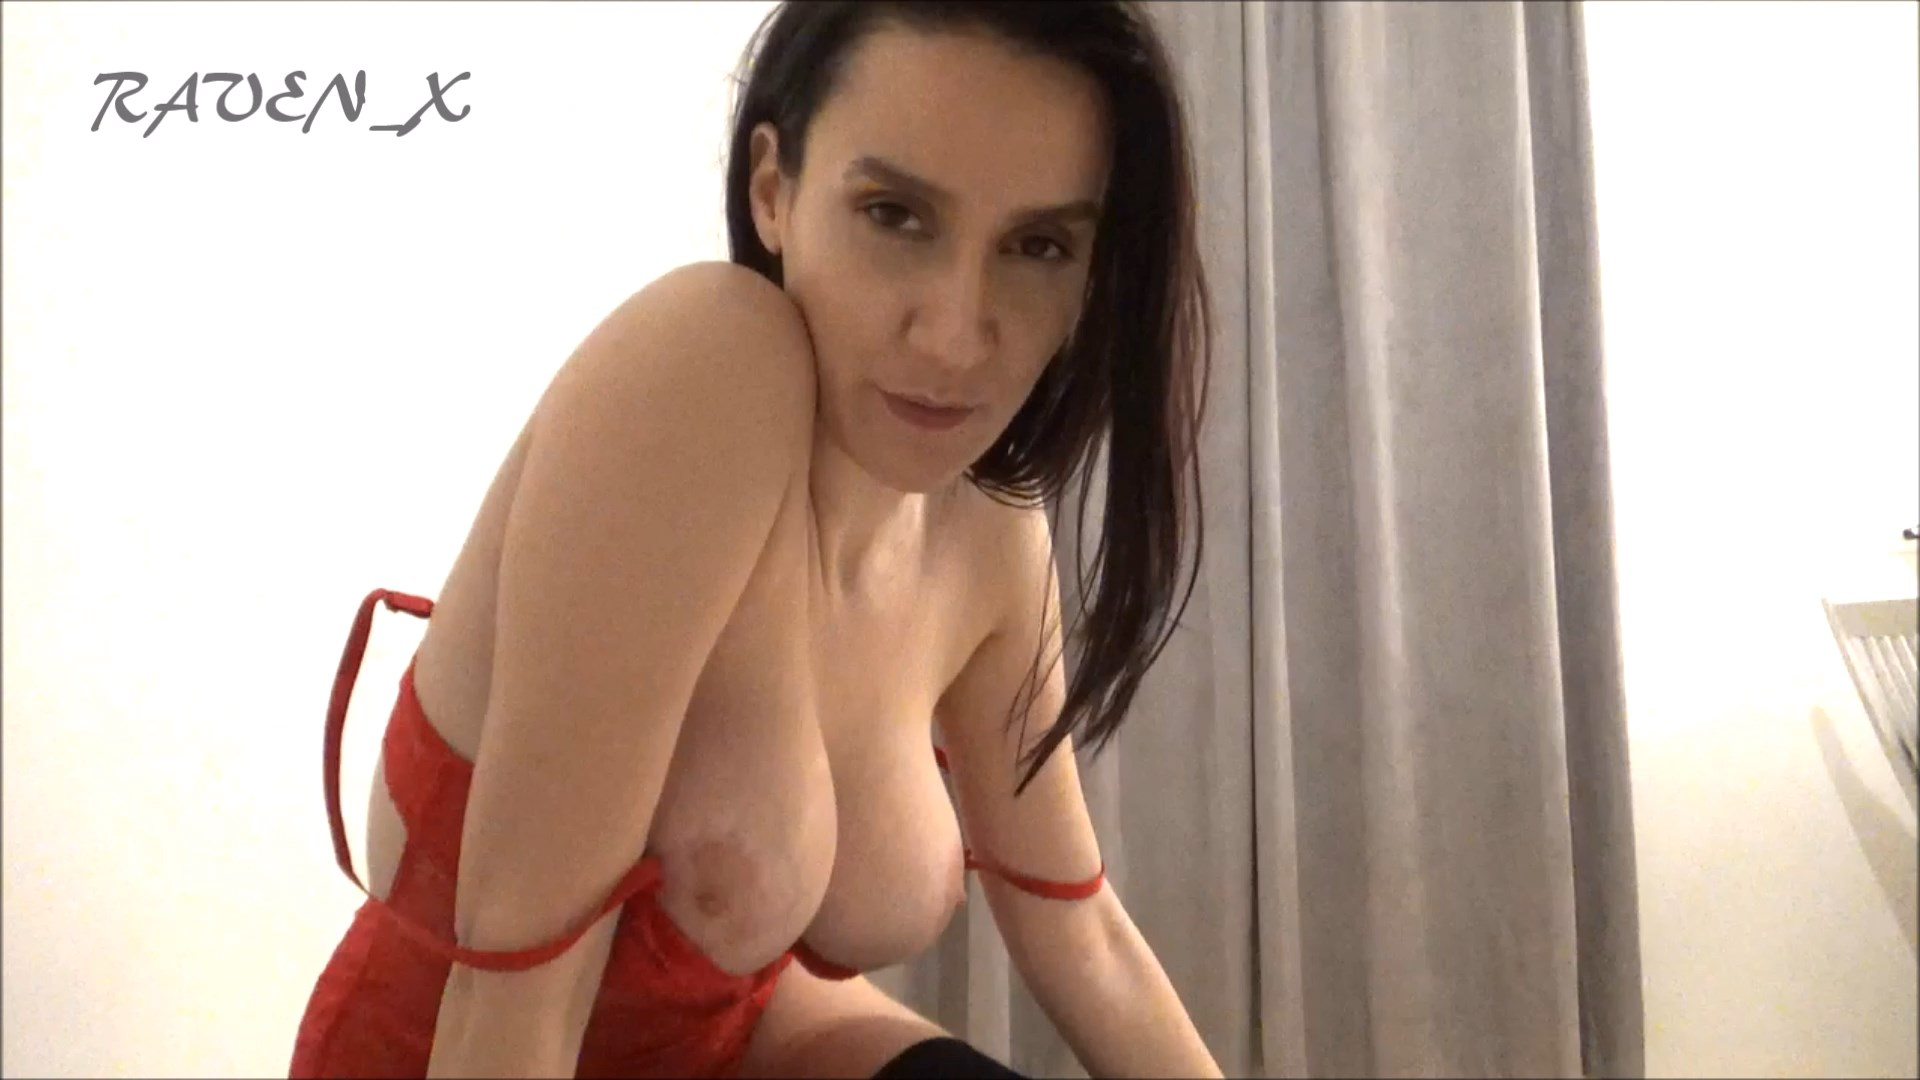 IMPREGNATING YOUR MOTHER HD (POV TABOO ROLE PLAY) - Raven